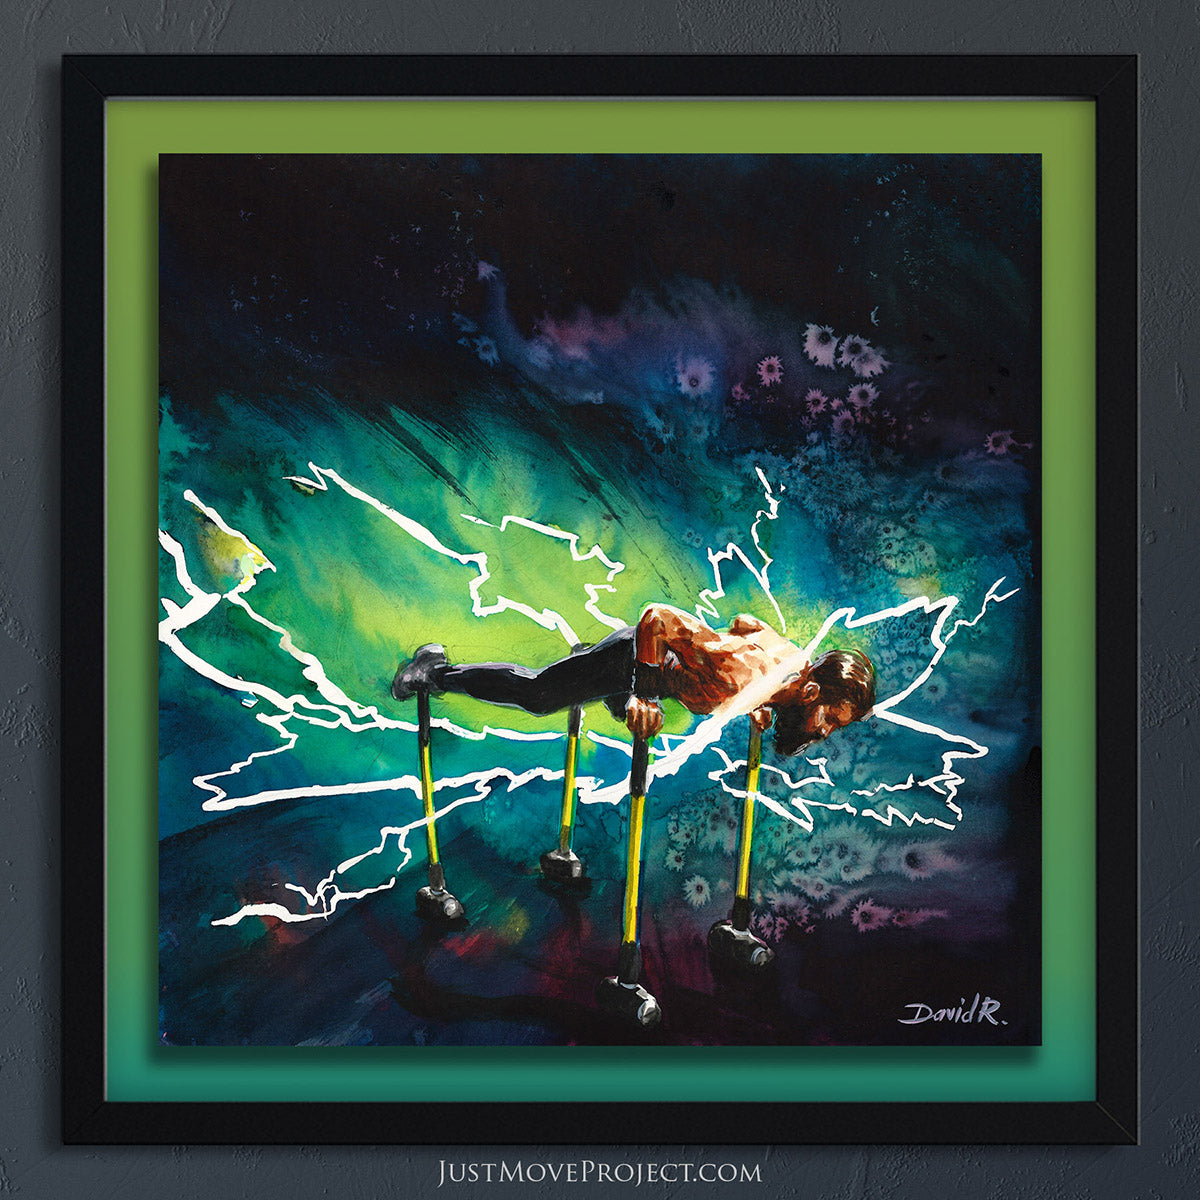 david roman art just move project 2 watercolour watercolor painting vibrant wall art home decor wall art framed canvas inspired by movement and athletes turquoise teal lime green travis horn turquoise thunder thunderbolt